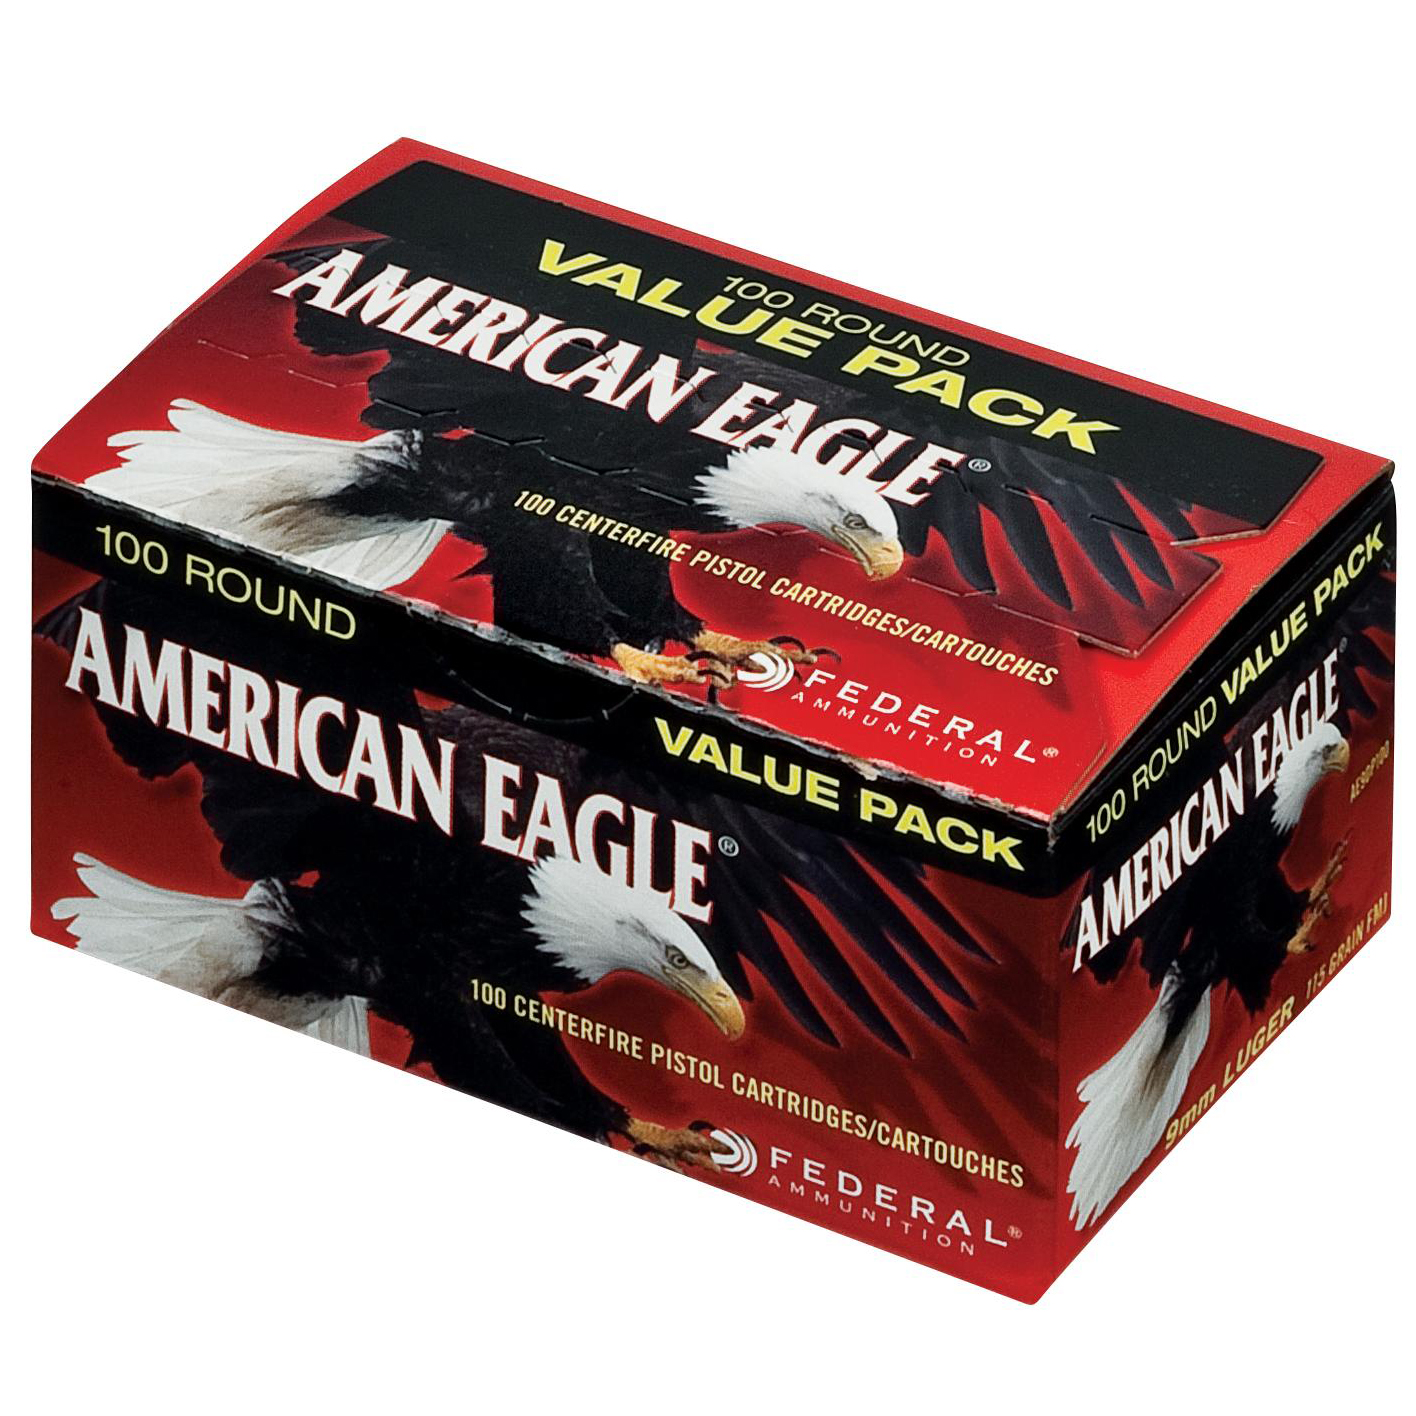 American Eagle Handgun Ammo 100-Round Value Pack, 9mm Luger, 115-gr, FMJ thumbnail